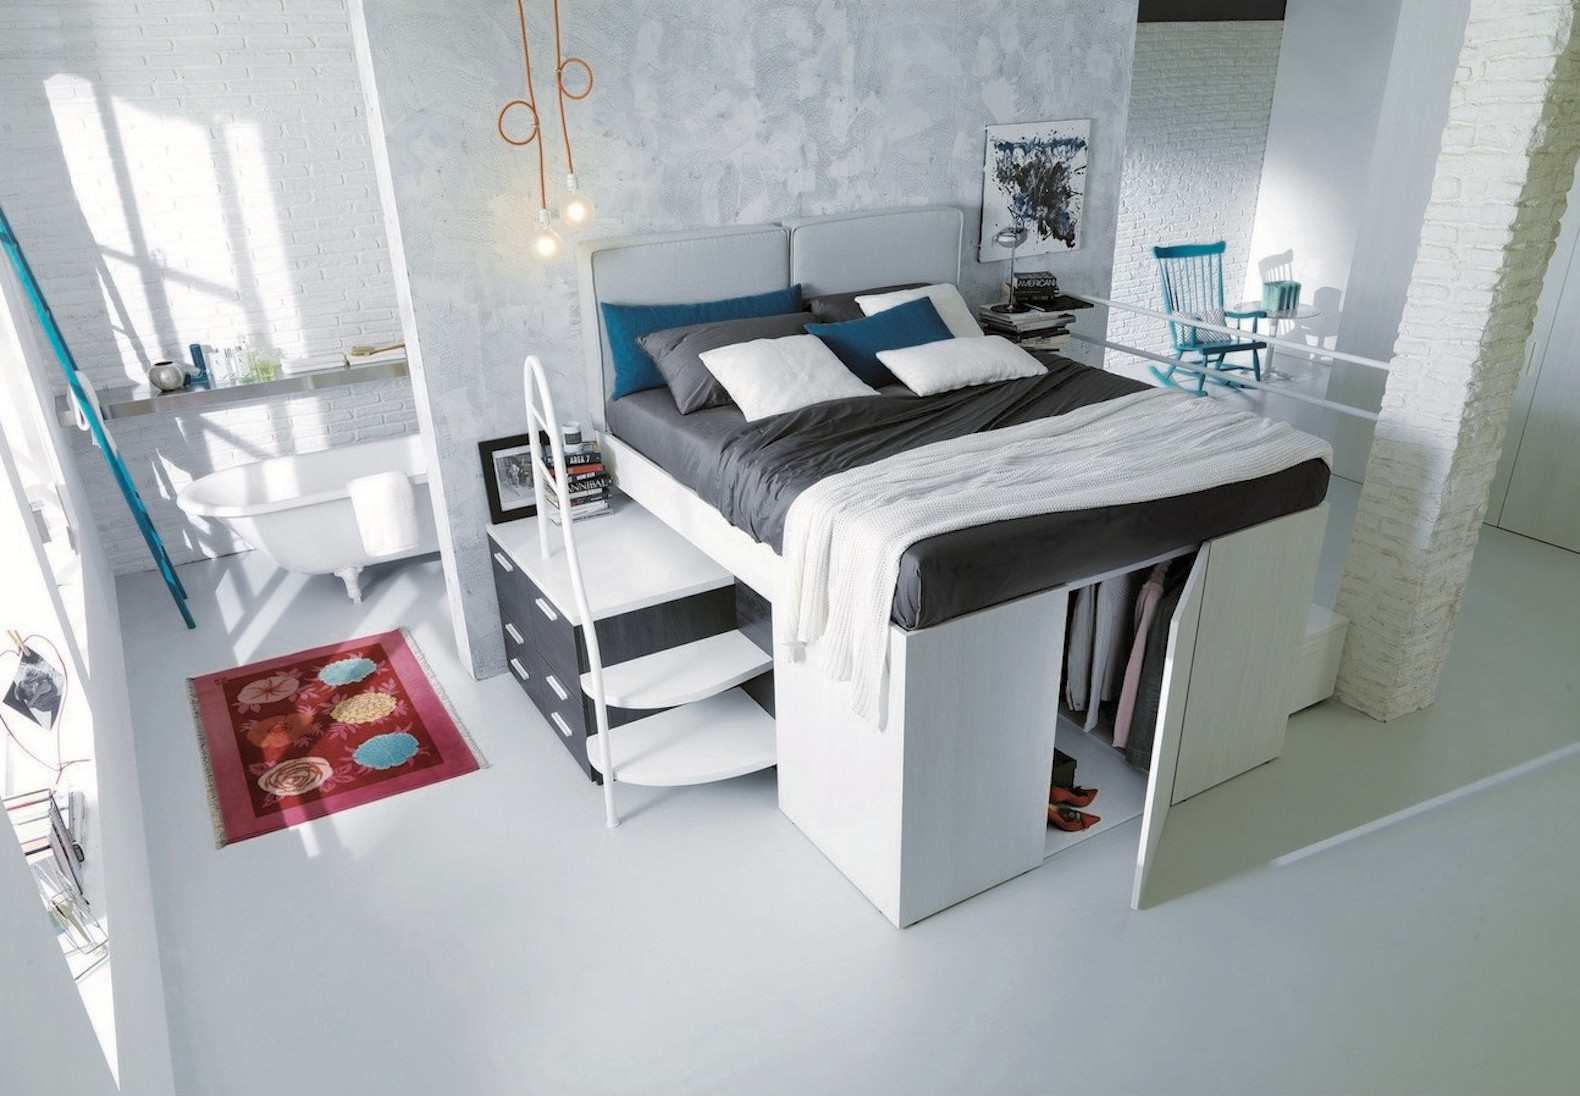 Space Saving Bedrooms Some Brilliant Ideas Of The Space Saving Beds For The Bedroom With